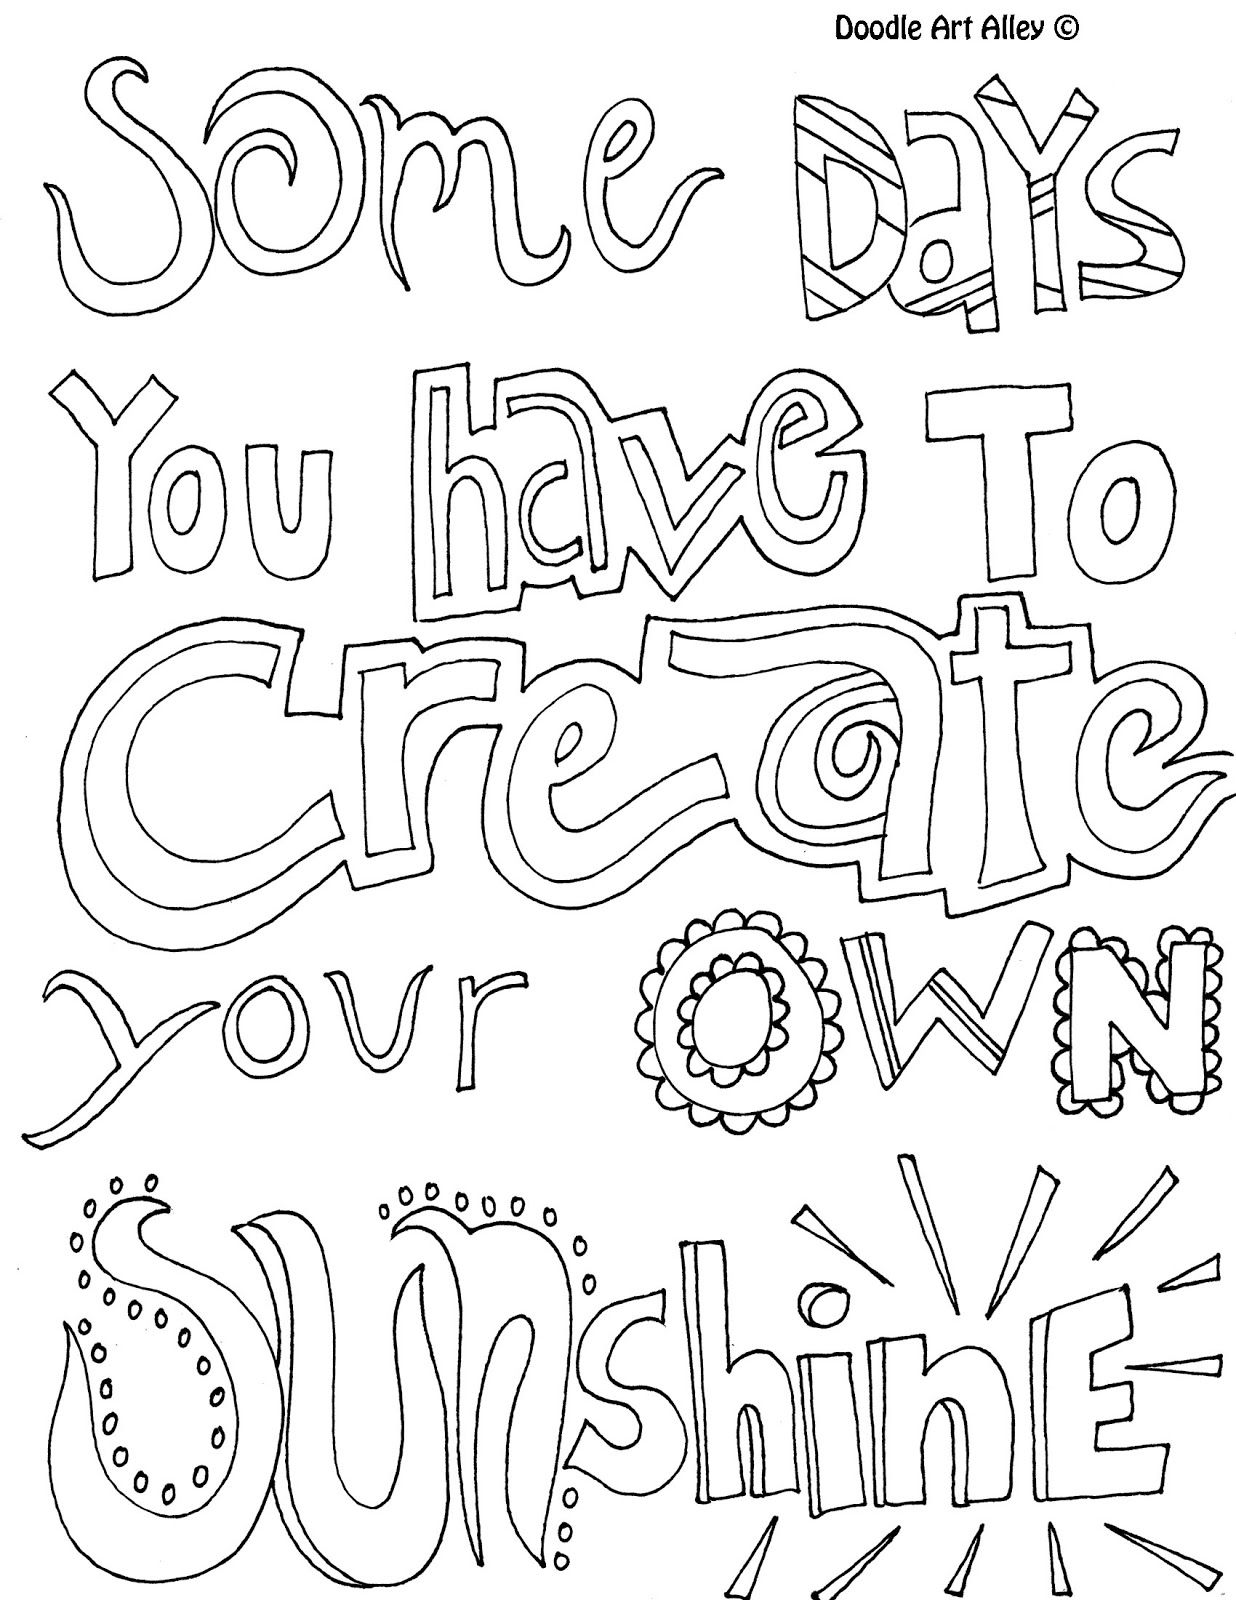 Free coloring pages for adults quotes - Quote Coloring Pages Free Online Printable Coloring Pages Sheets For Kids Get The Latest Free Quote Coloring Pages Images Favorite Coloring Pages To